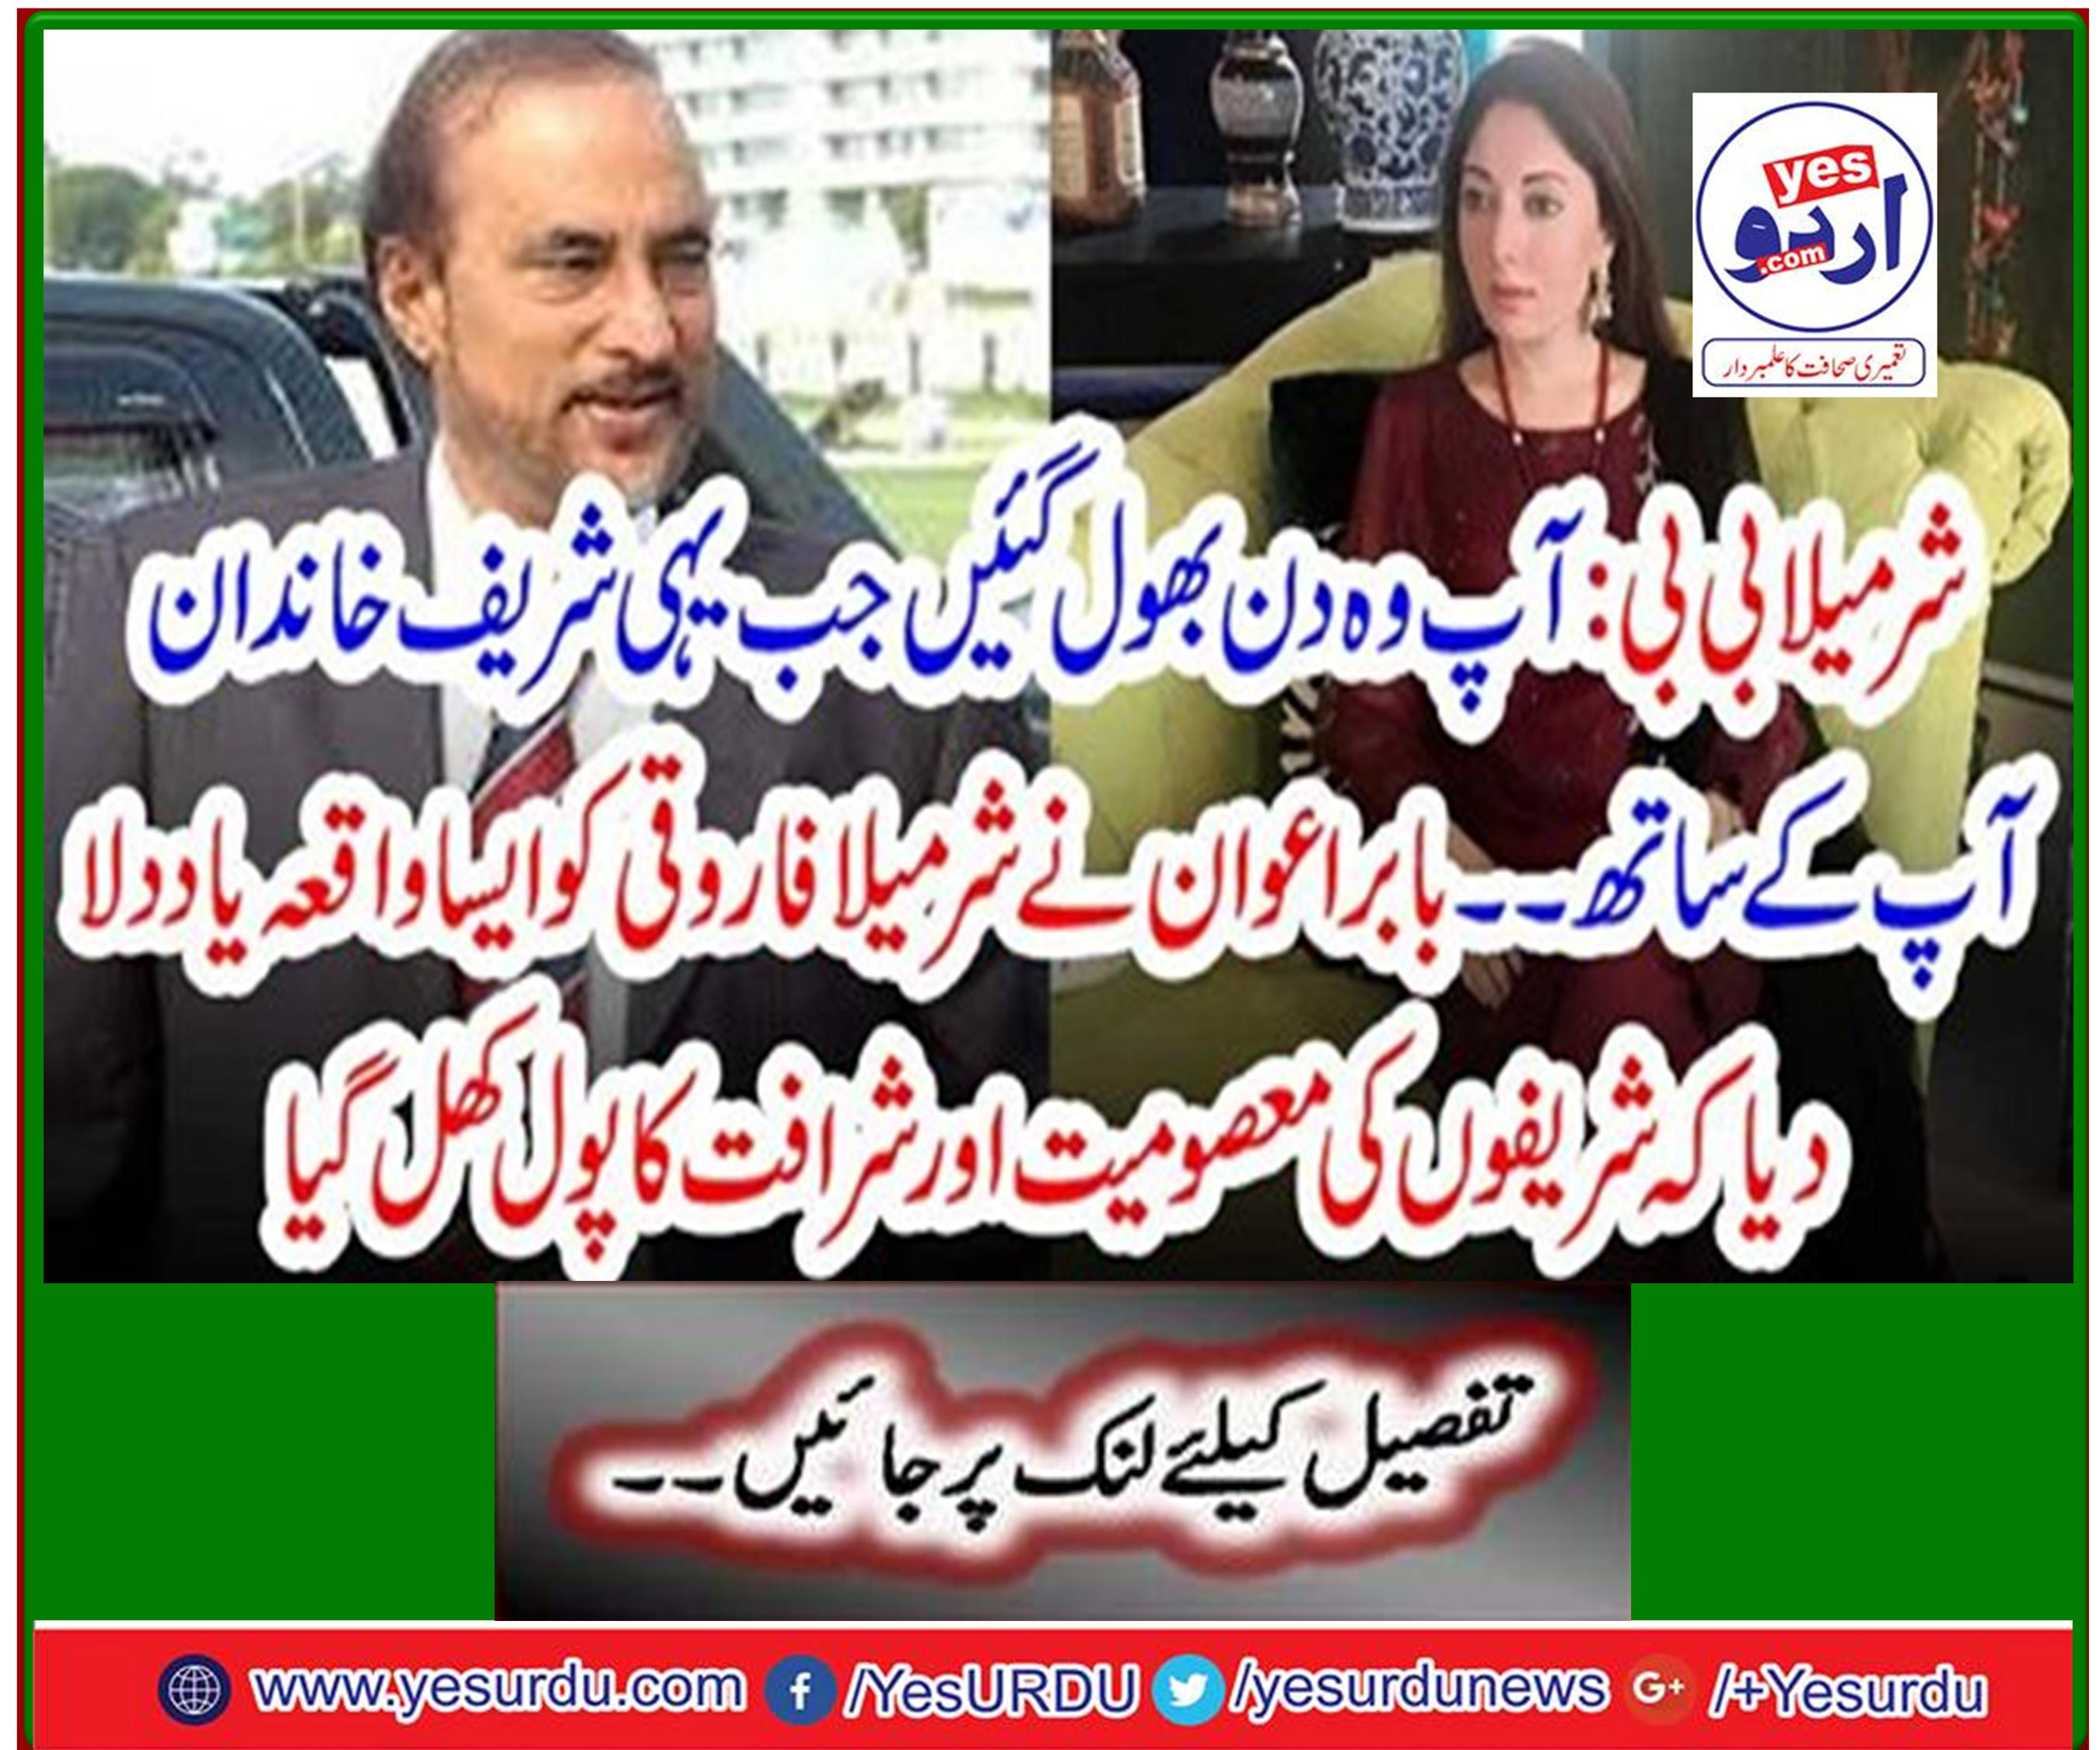 Babar Awan reminds Sharmila Farooqi of an incident in which Sharif's innocence and nobility pool opens